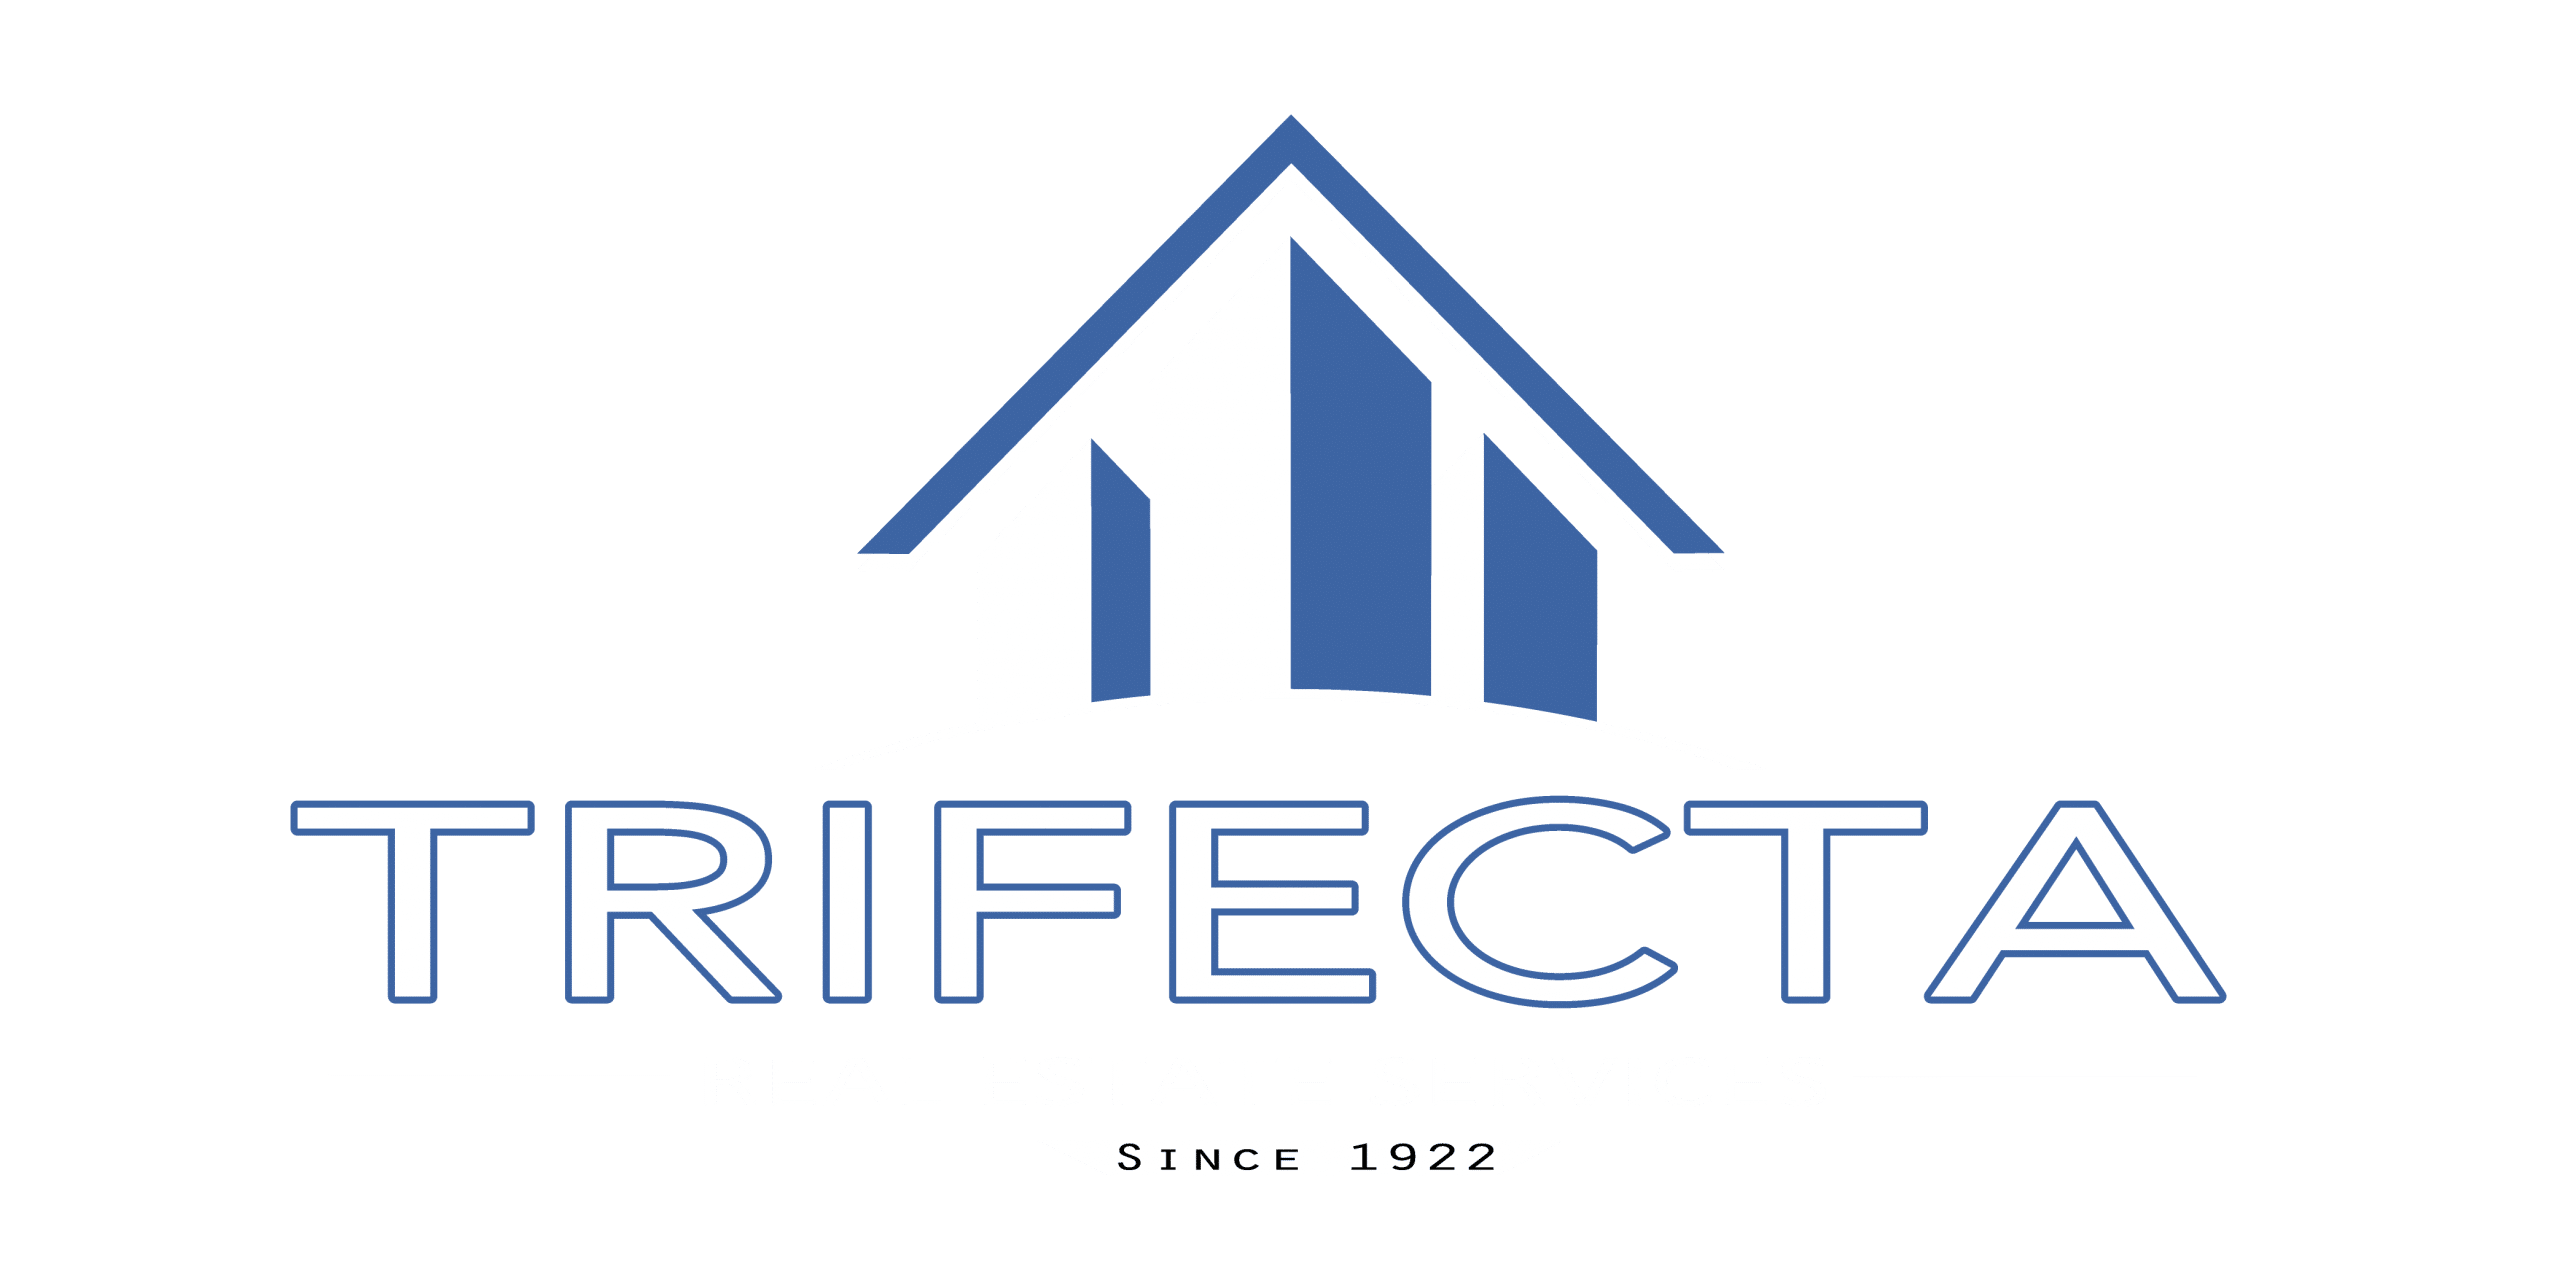 Trifecta Real Estate Services